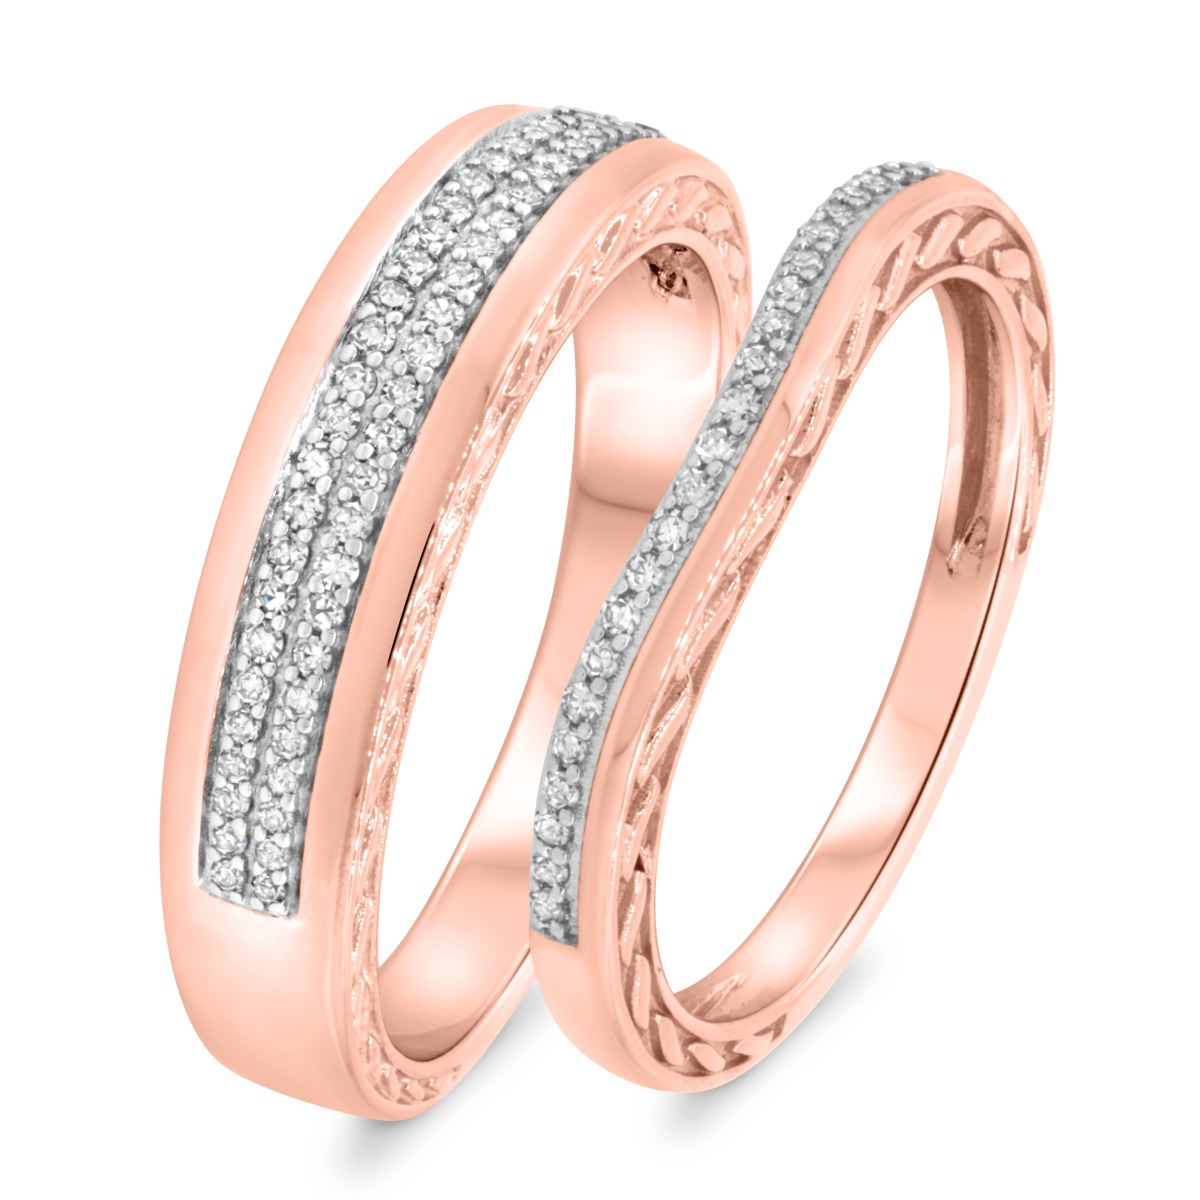 1/3 Carat T.W. Diamond Matching Wedding Band Set 10K Rose Gold